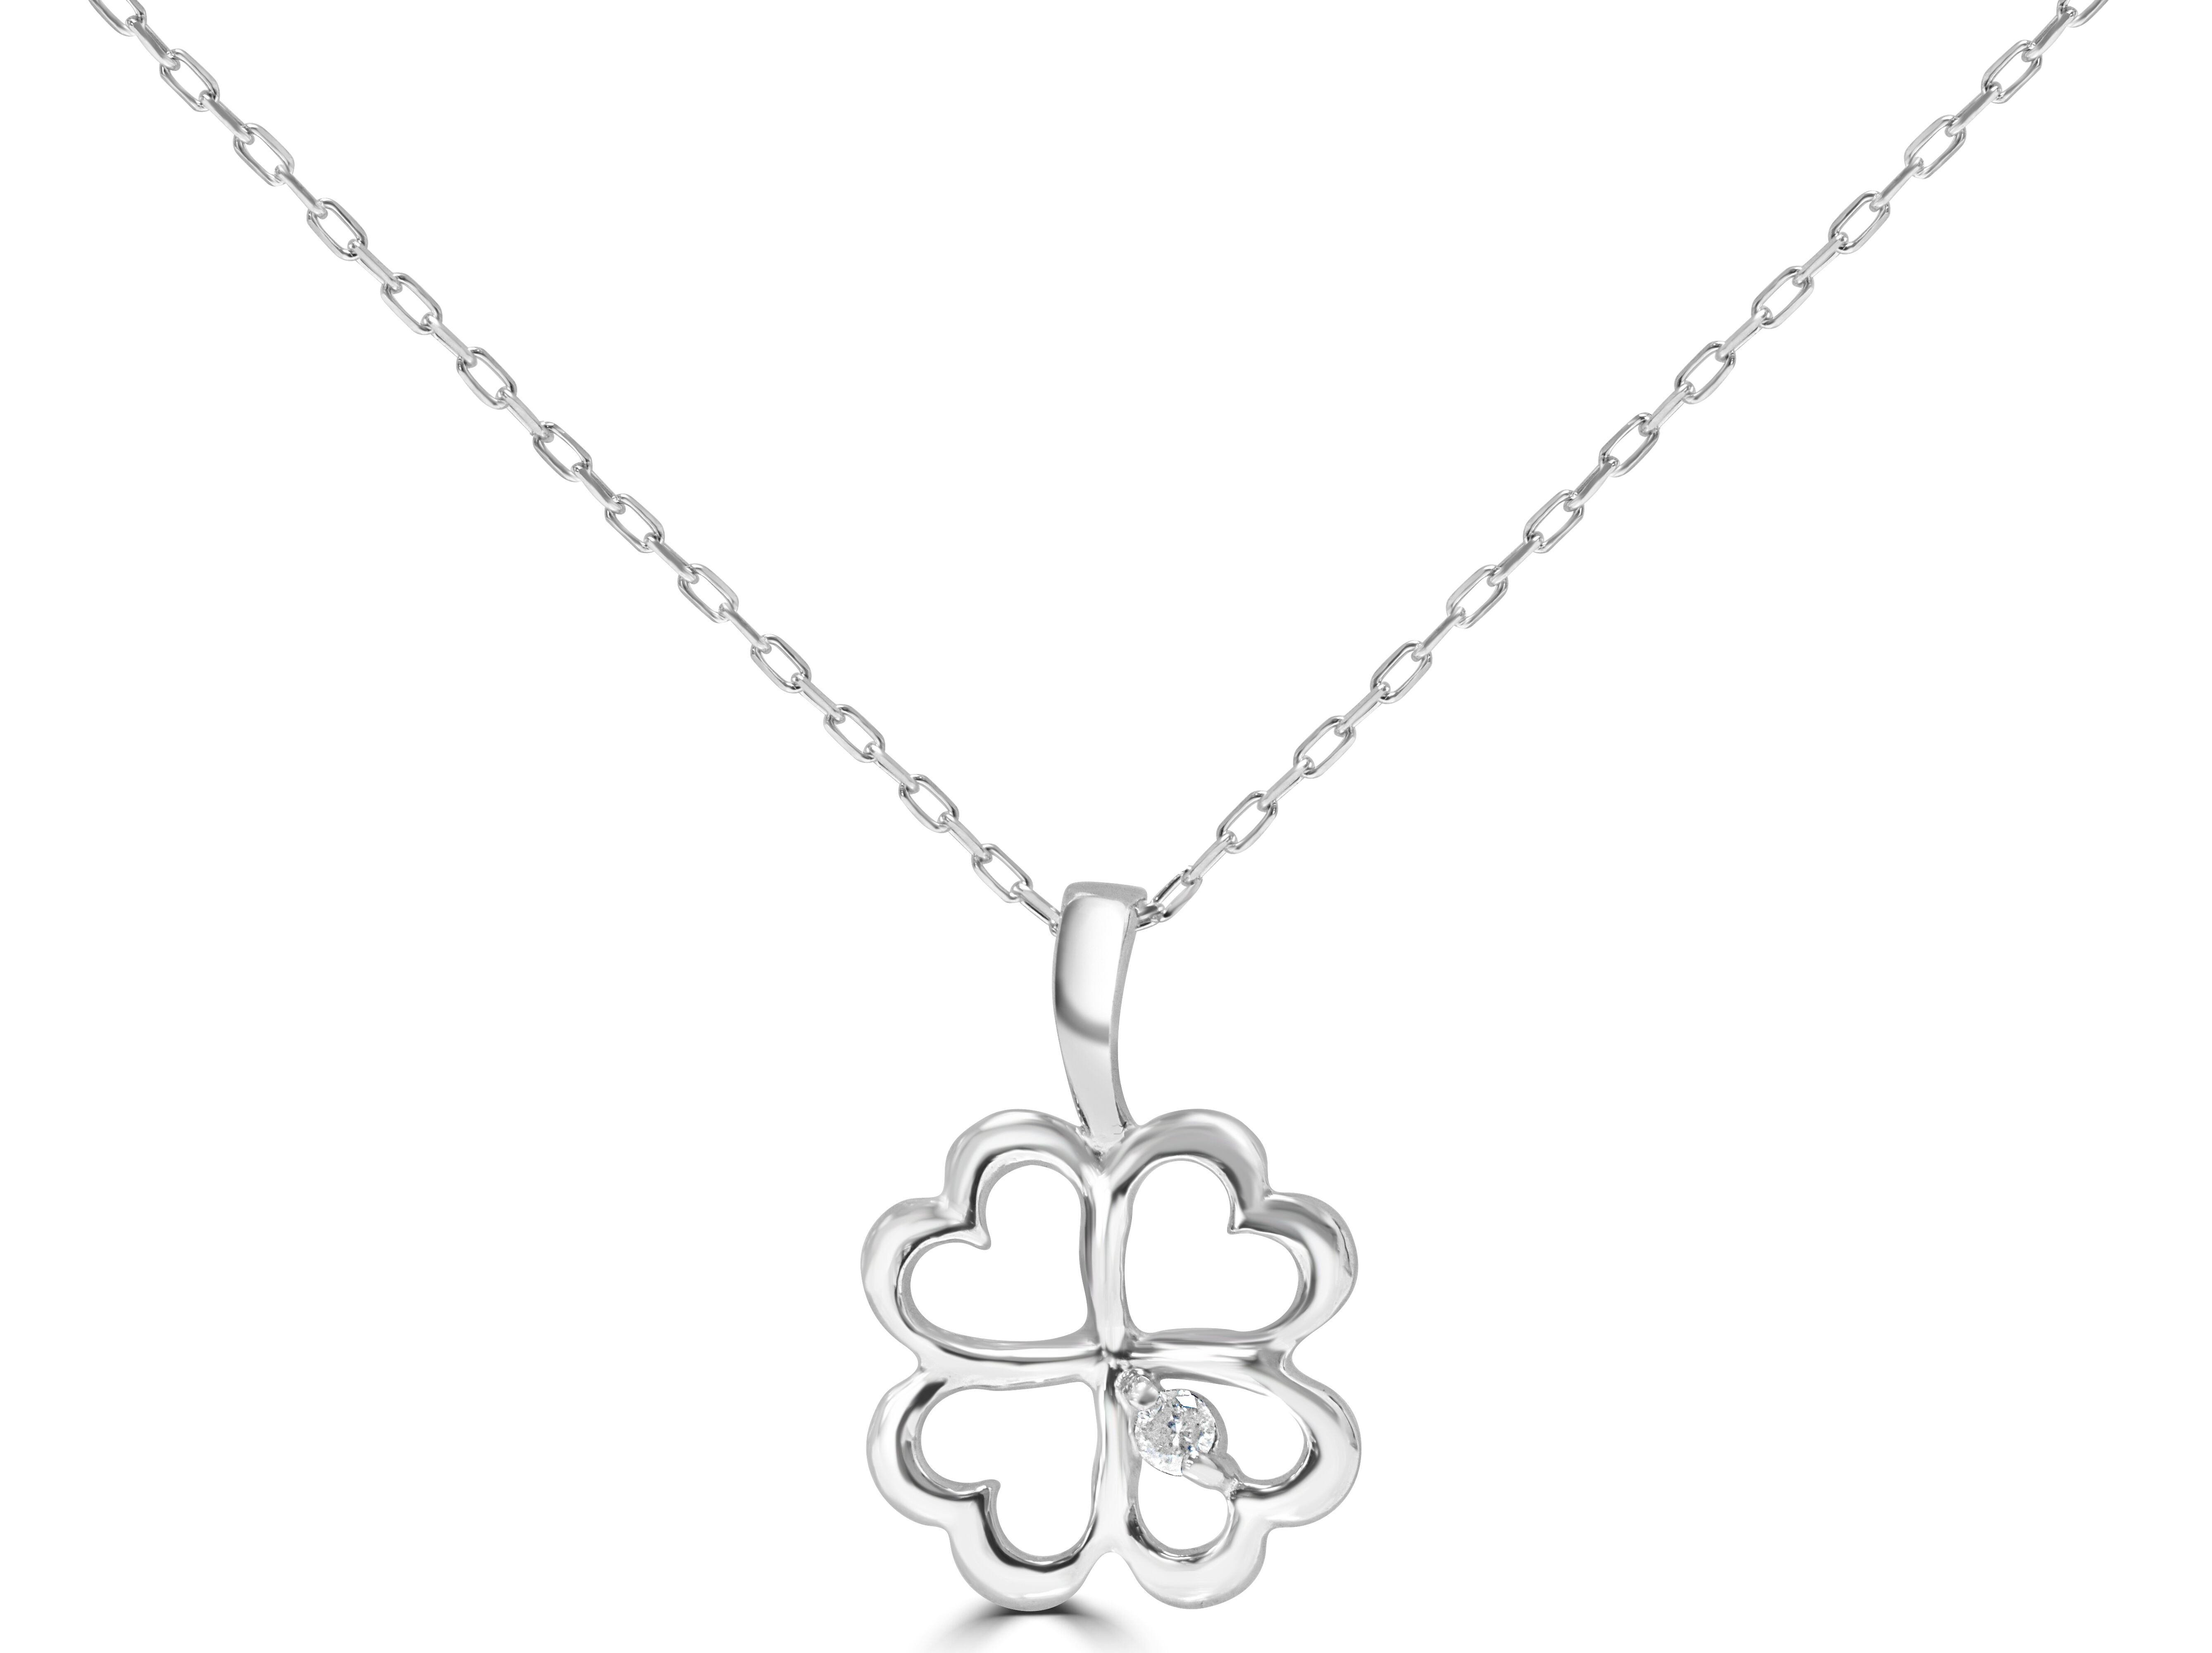 4 Heart Diamond Pendant Key In 9ct White Gold With 16 Inch Chain RRP £250